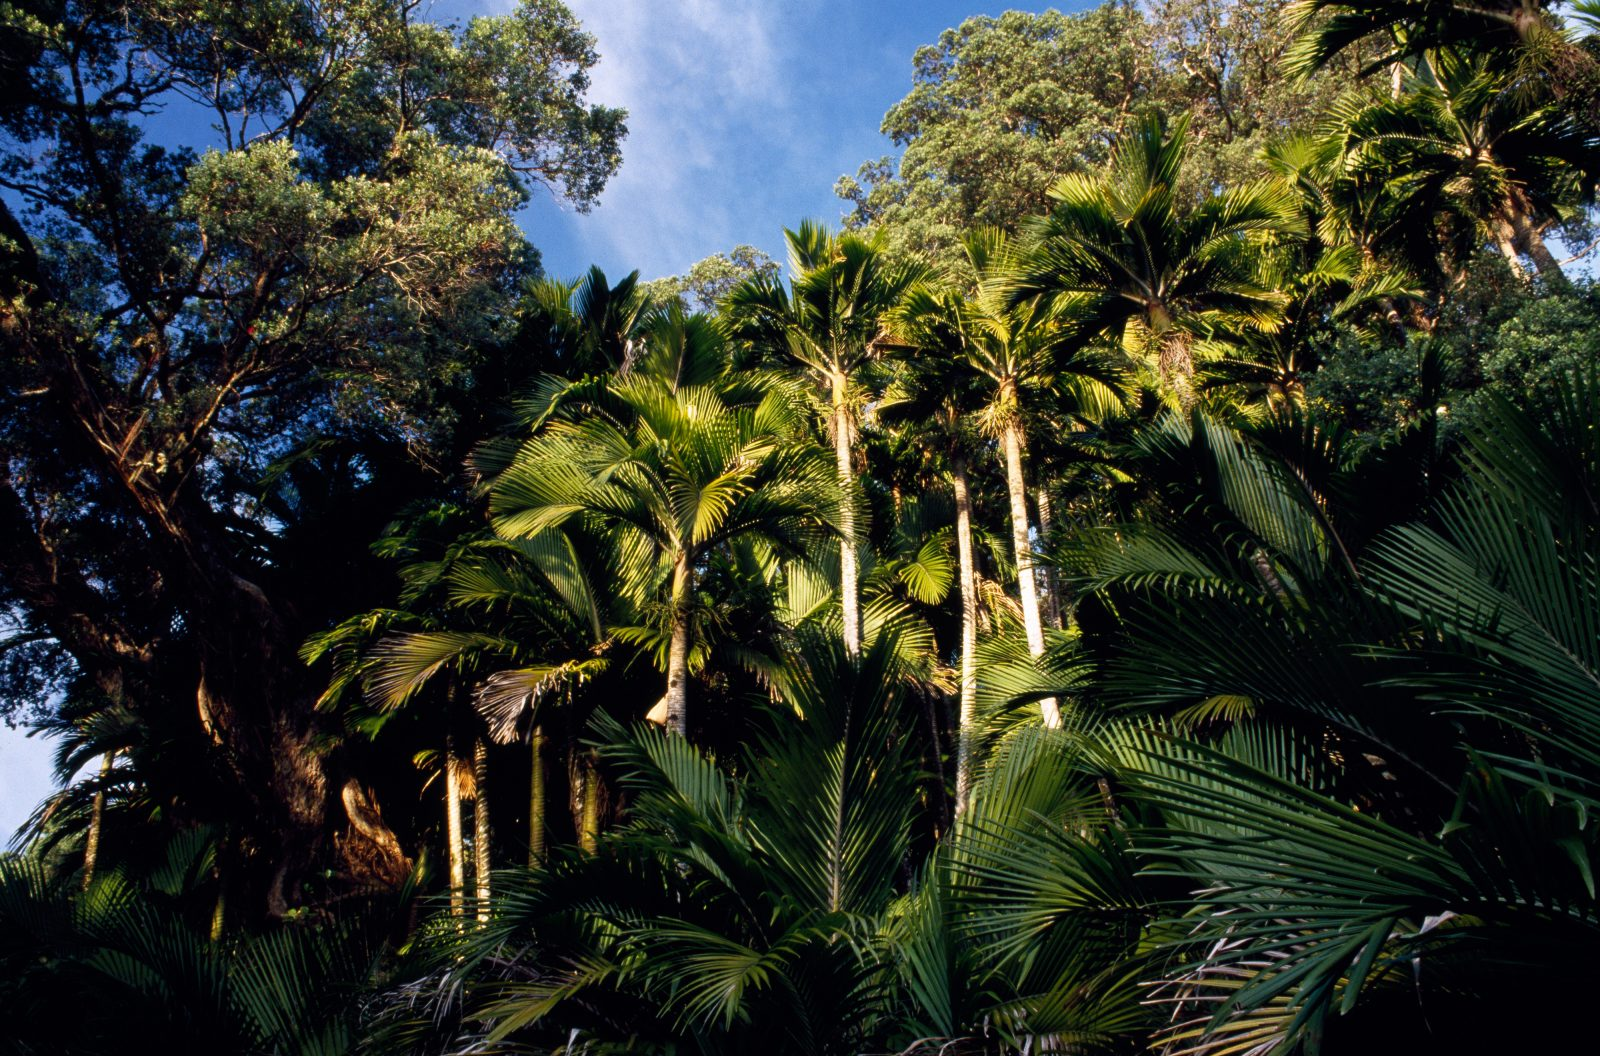 Pohutukawa and nikau palm are dominant components of Raoul Island vegetation.